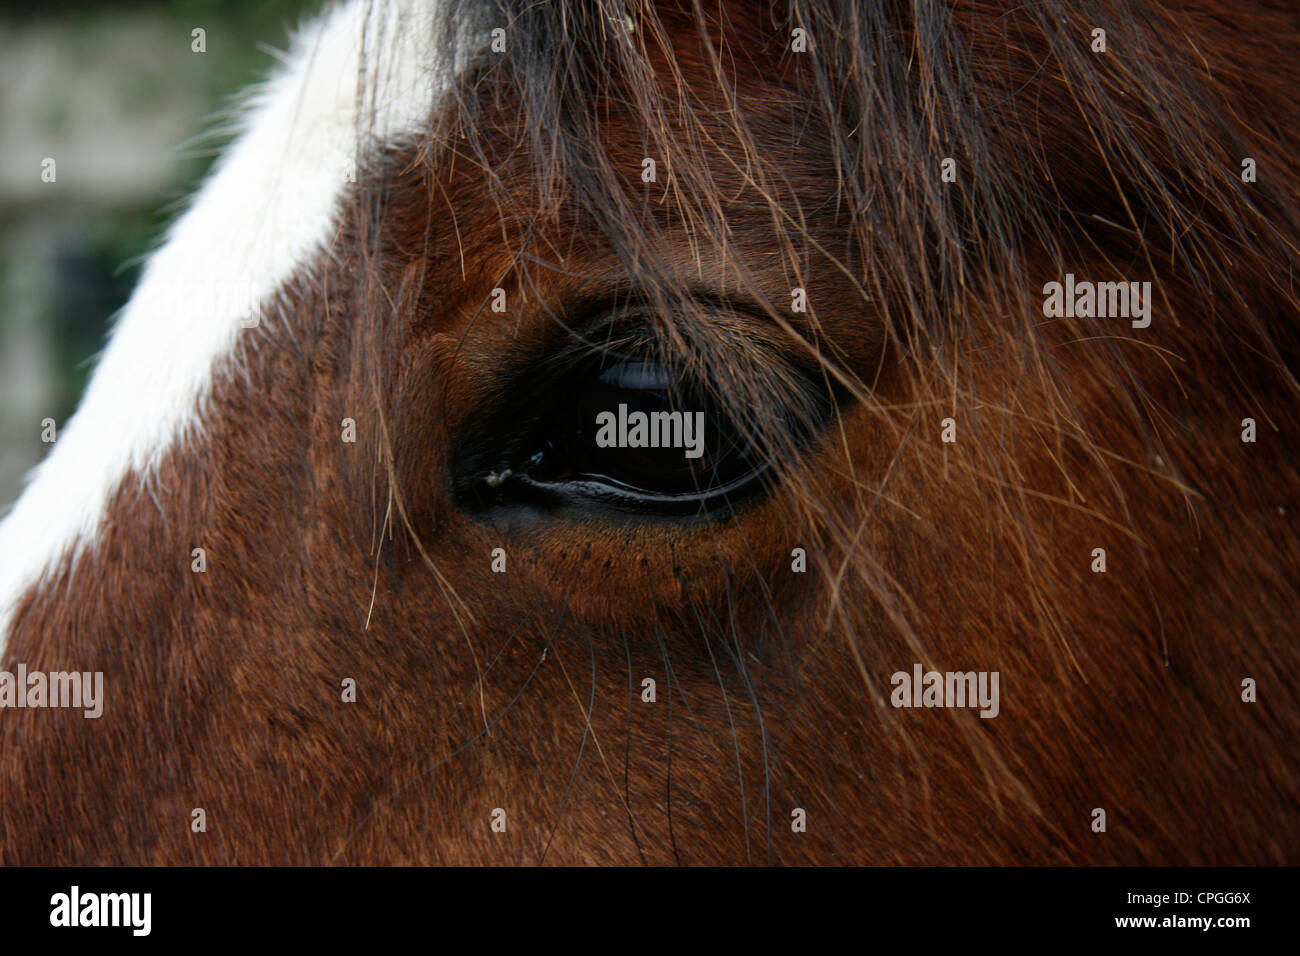 A brown horse with white strip marking on forehead Stock Photo